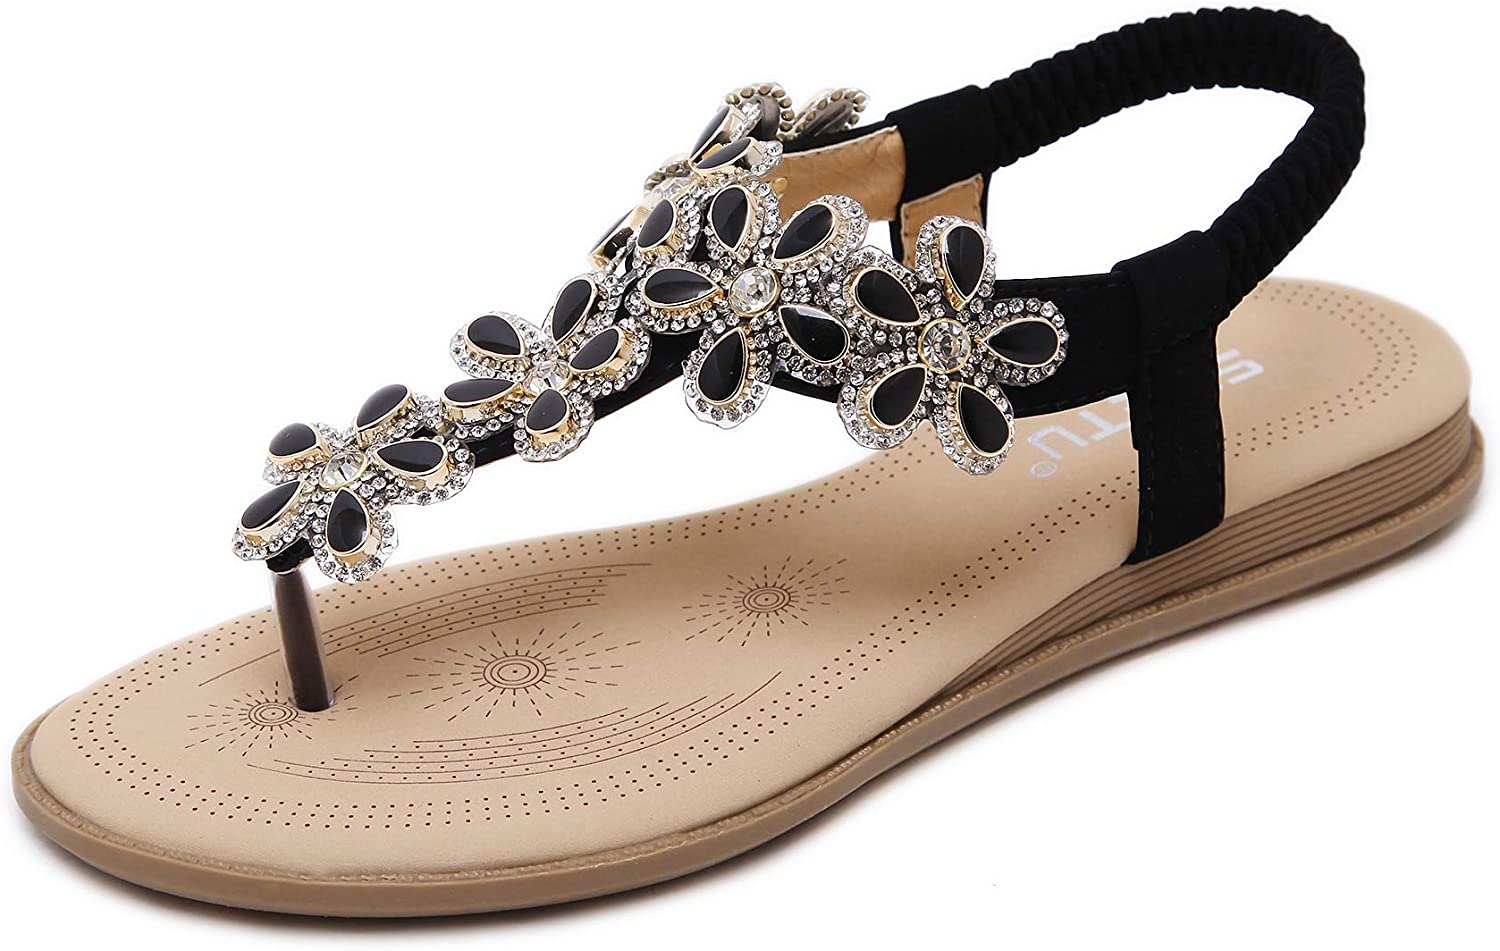 Open-Toed Sandals Flat Soles Slippers Flip-Flops Beach shoes Bohemian Style Flower Diamond shoes